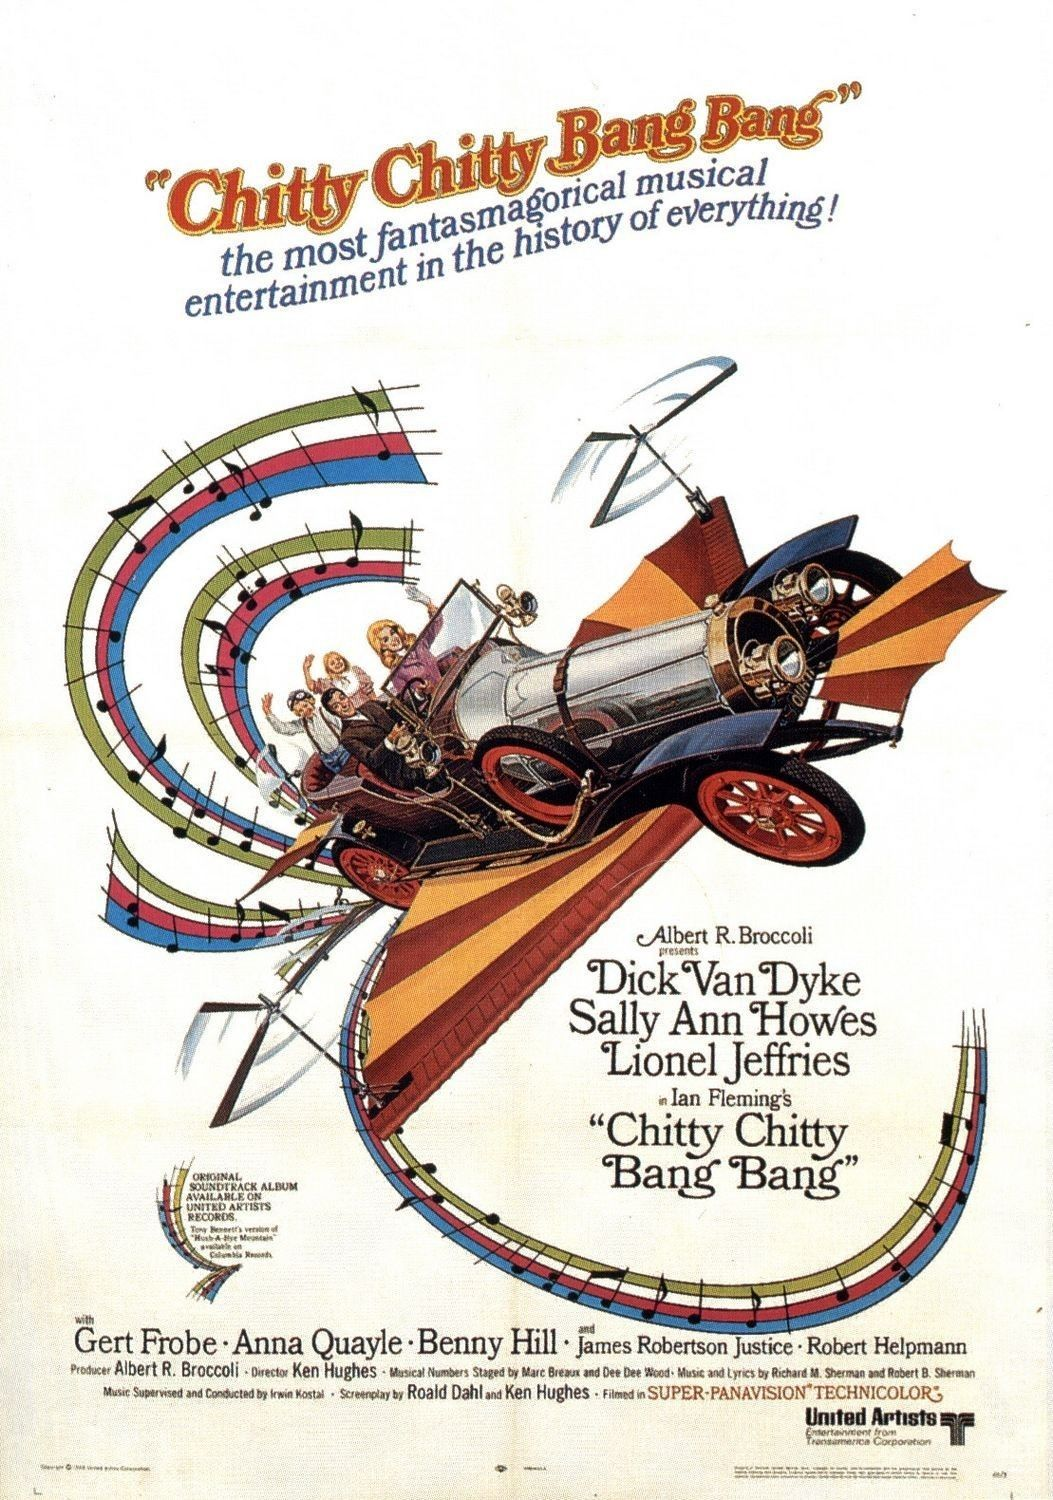 Chitty Chitty Bang Bang Book - Vintage 1964- Excellent Condition!